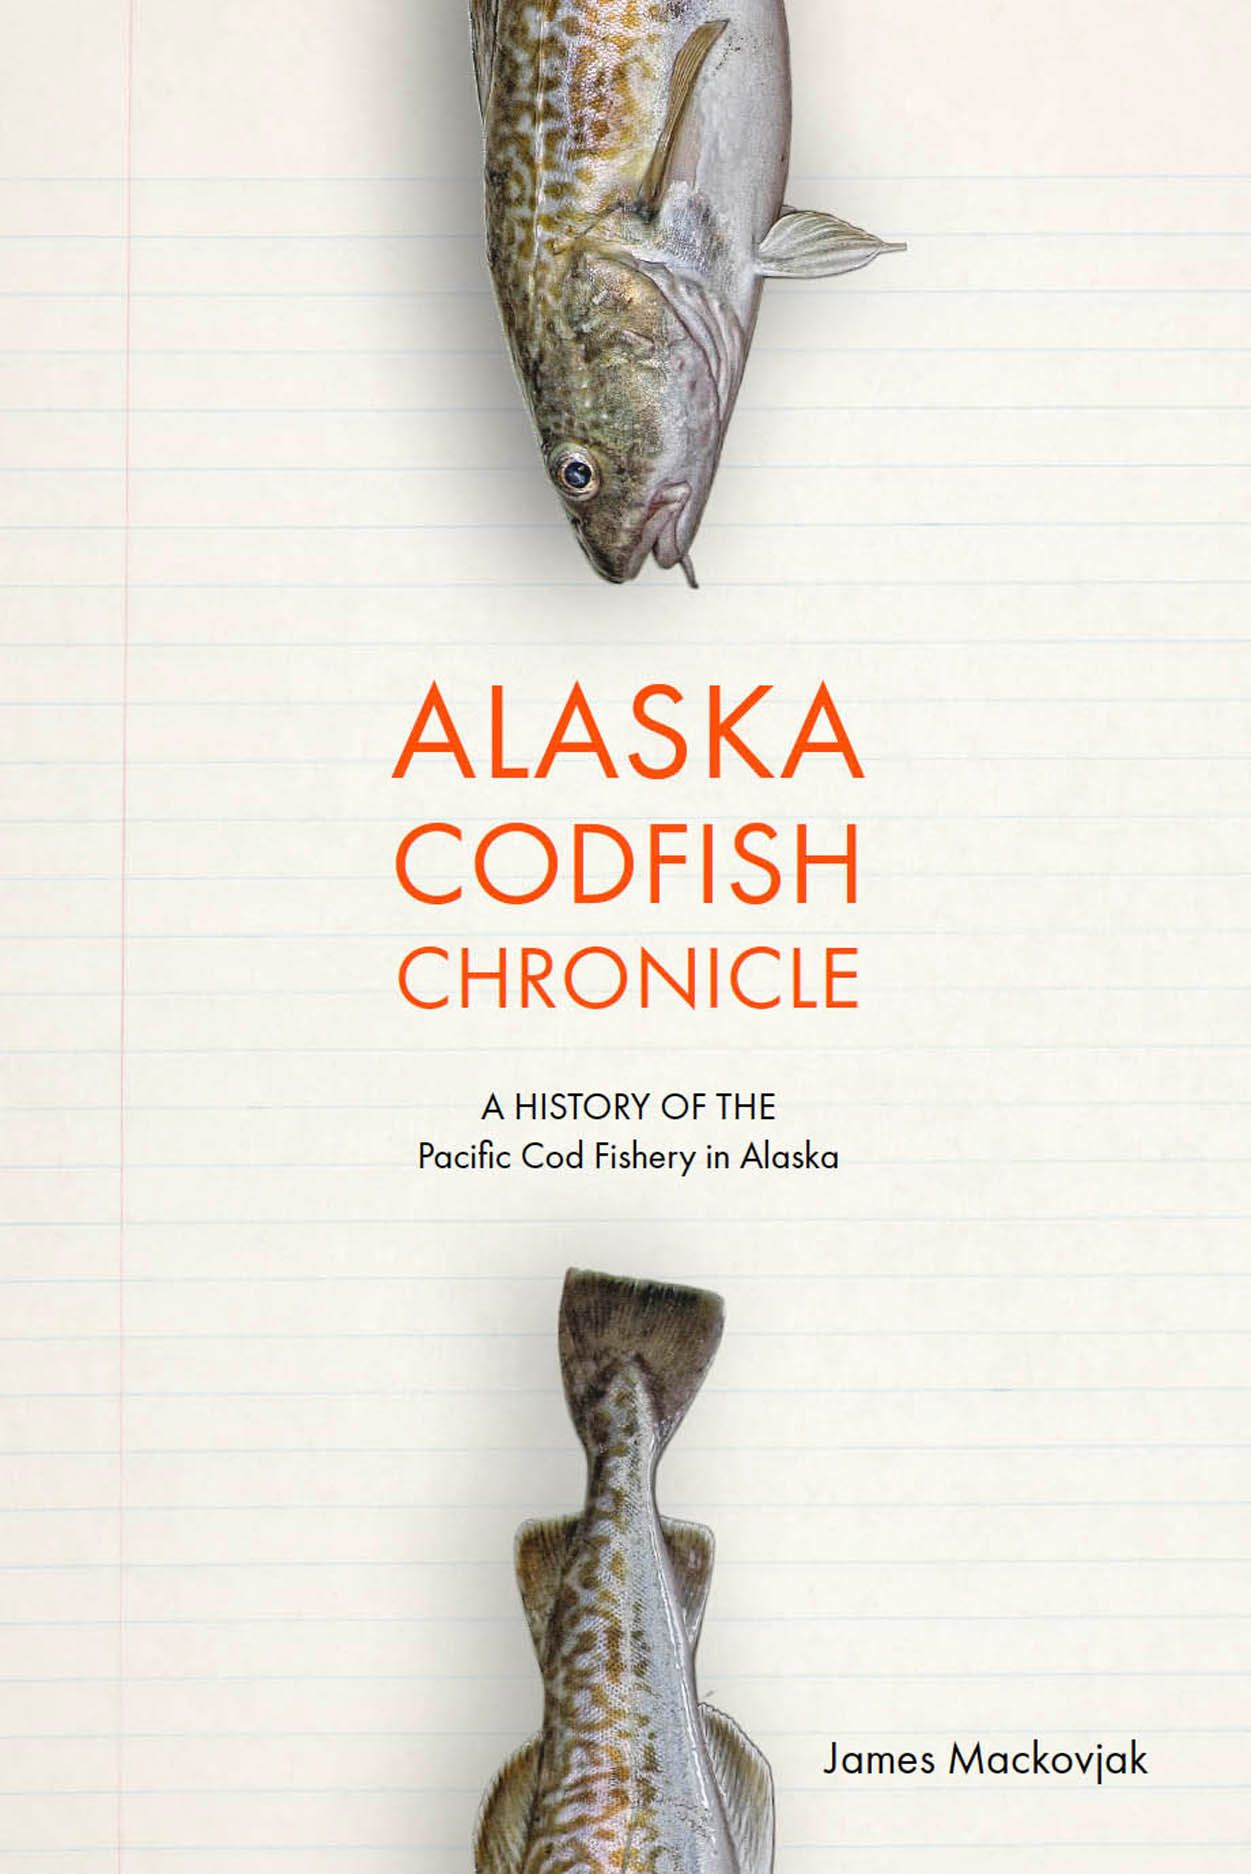 Alaska Codfish Chronicle: A History of the Pacific Cod Fishery in Alaska